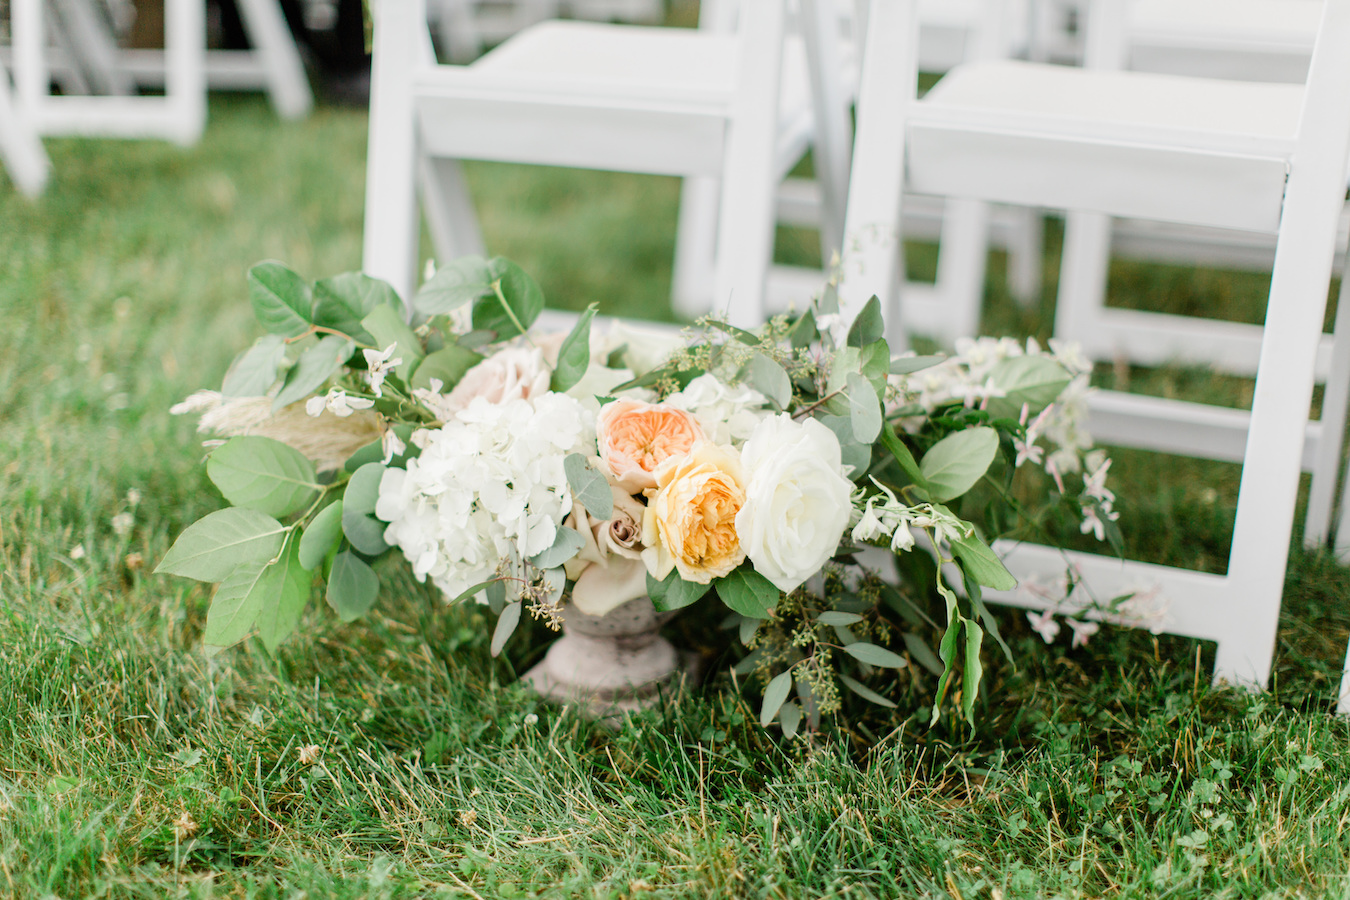 A large floral arrangement rests on the ground before a Holland, Michigan wedding